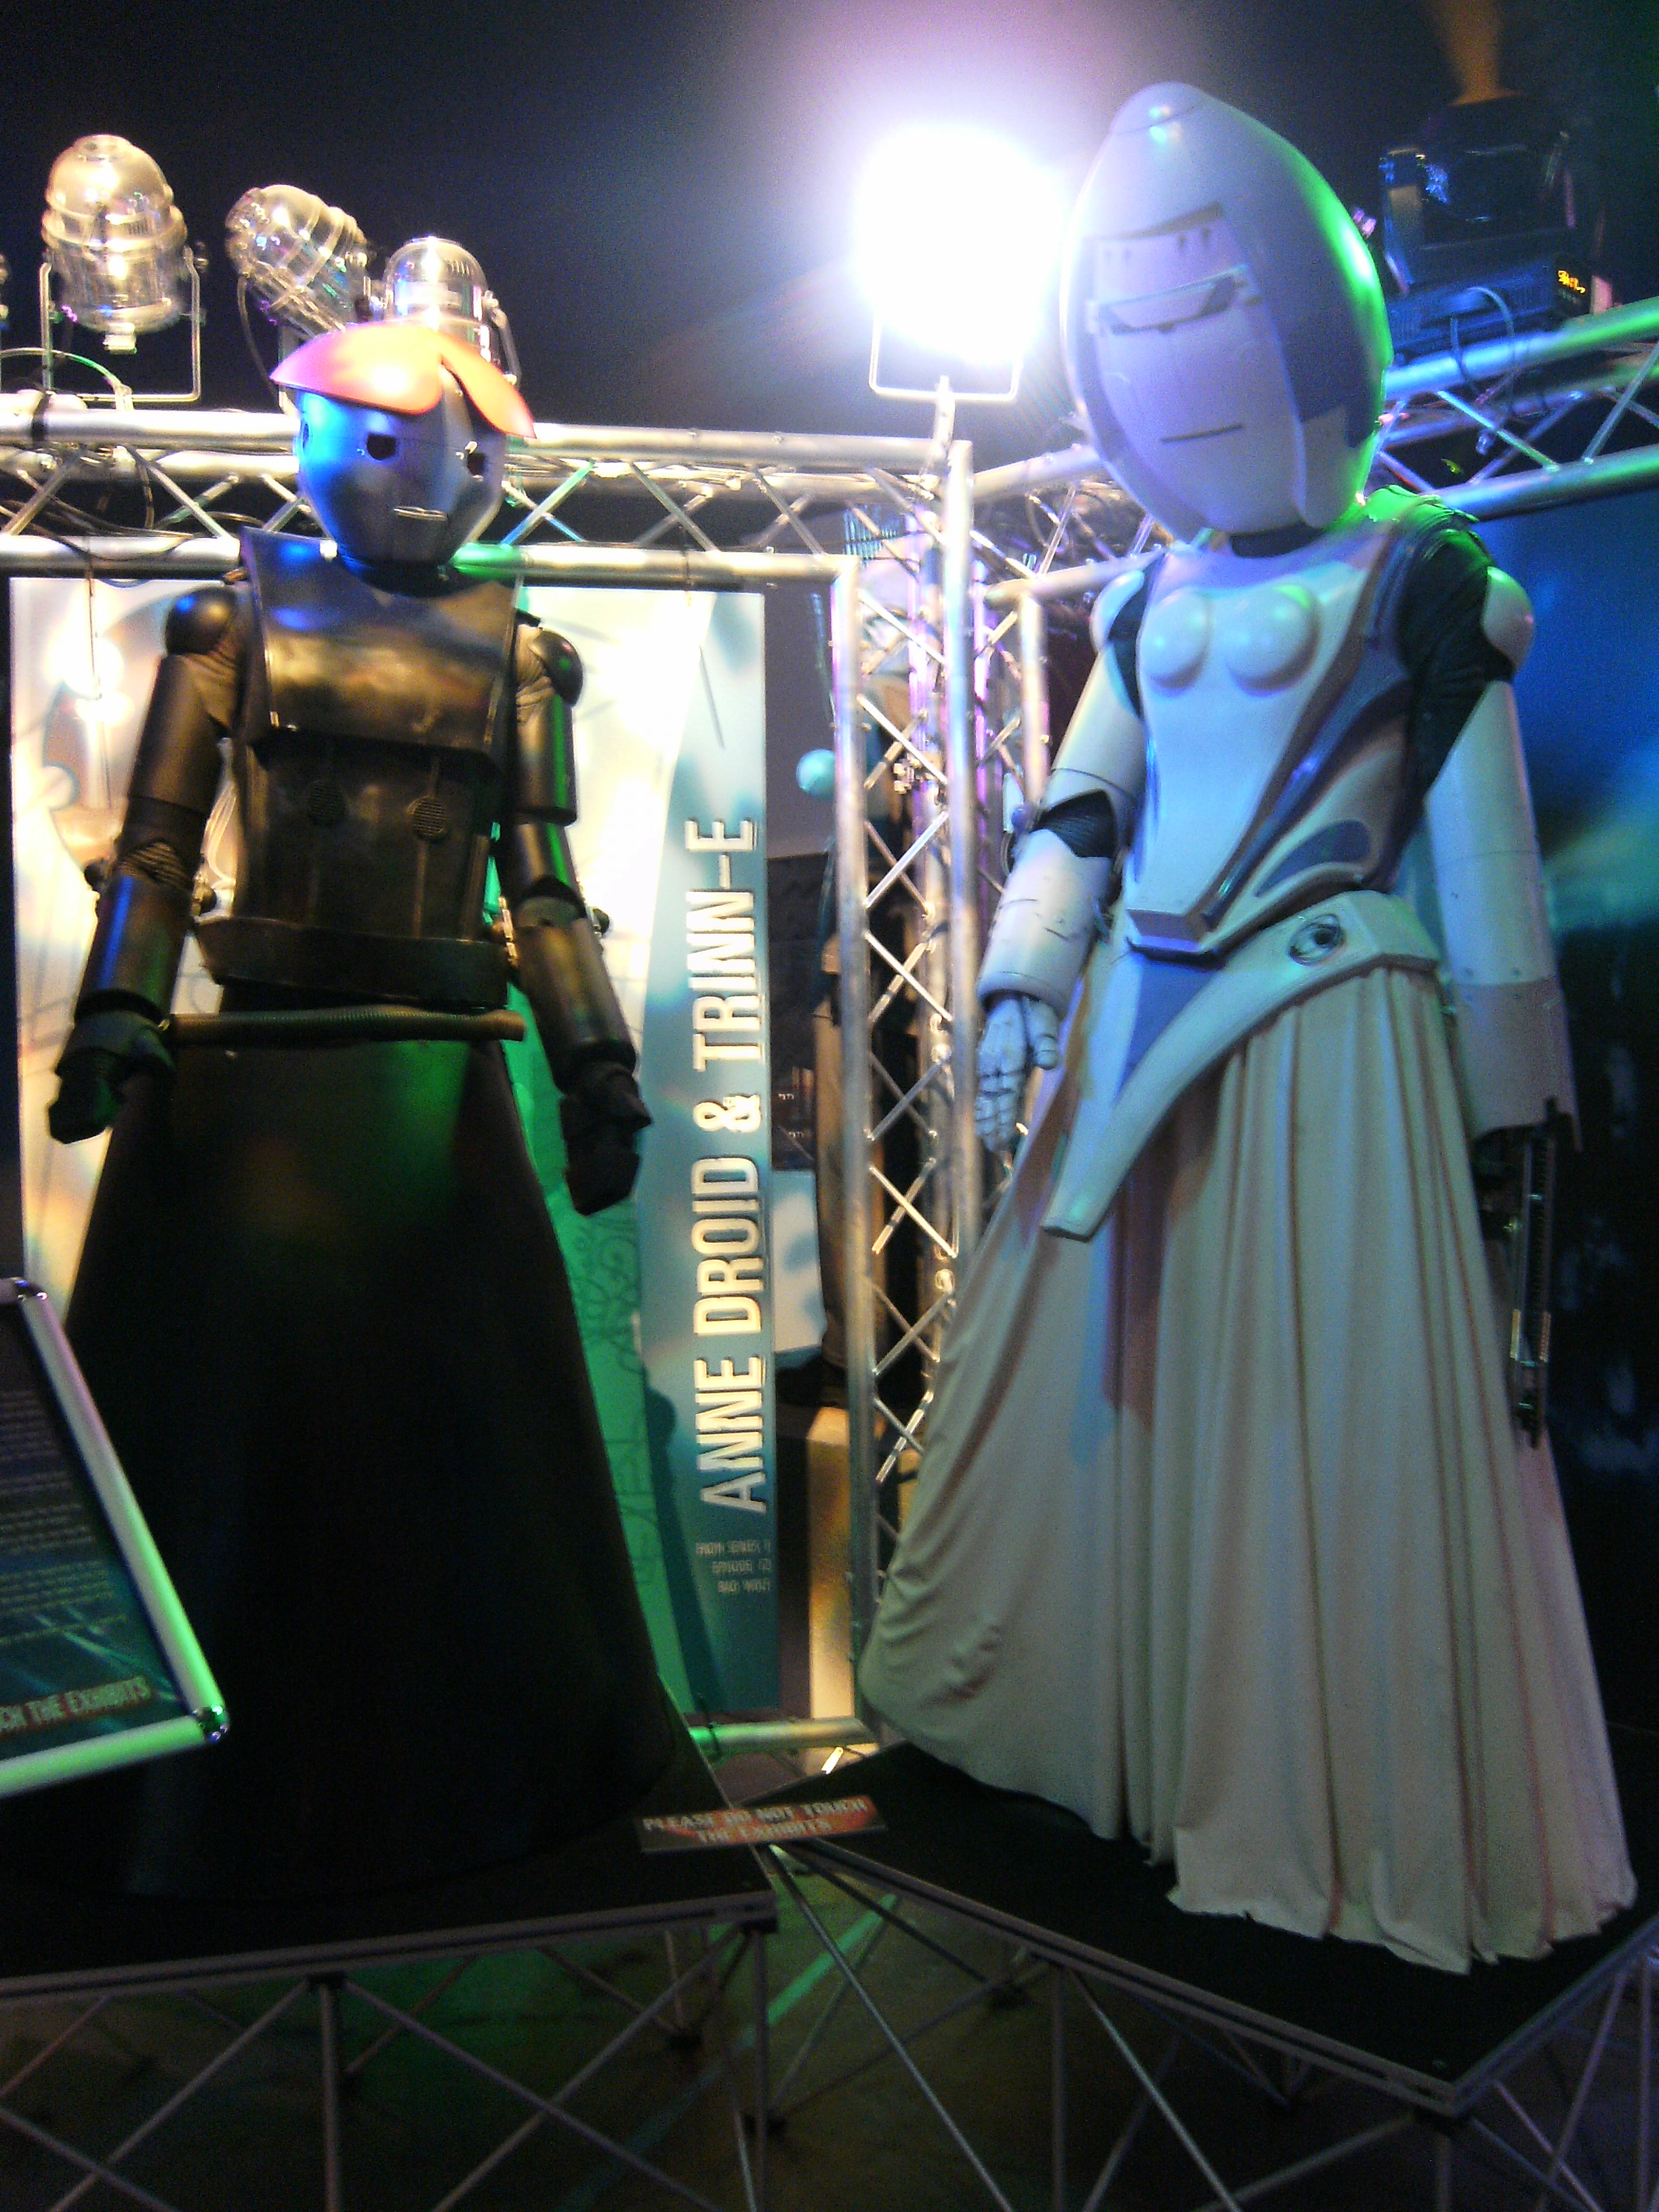 File:Doctor Who Exhibition (3568915919).jpg - Wikimedia ...  File:Doctor Who...